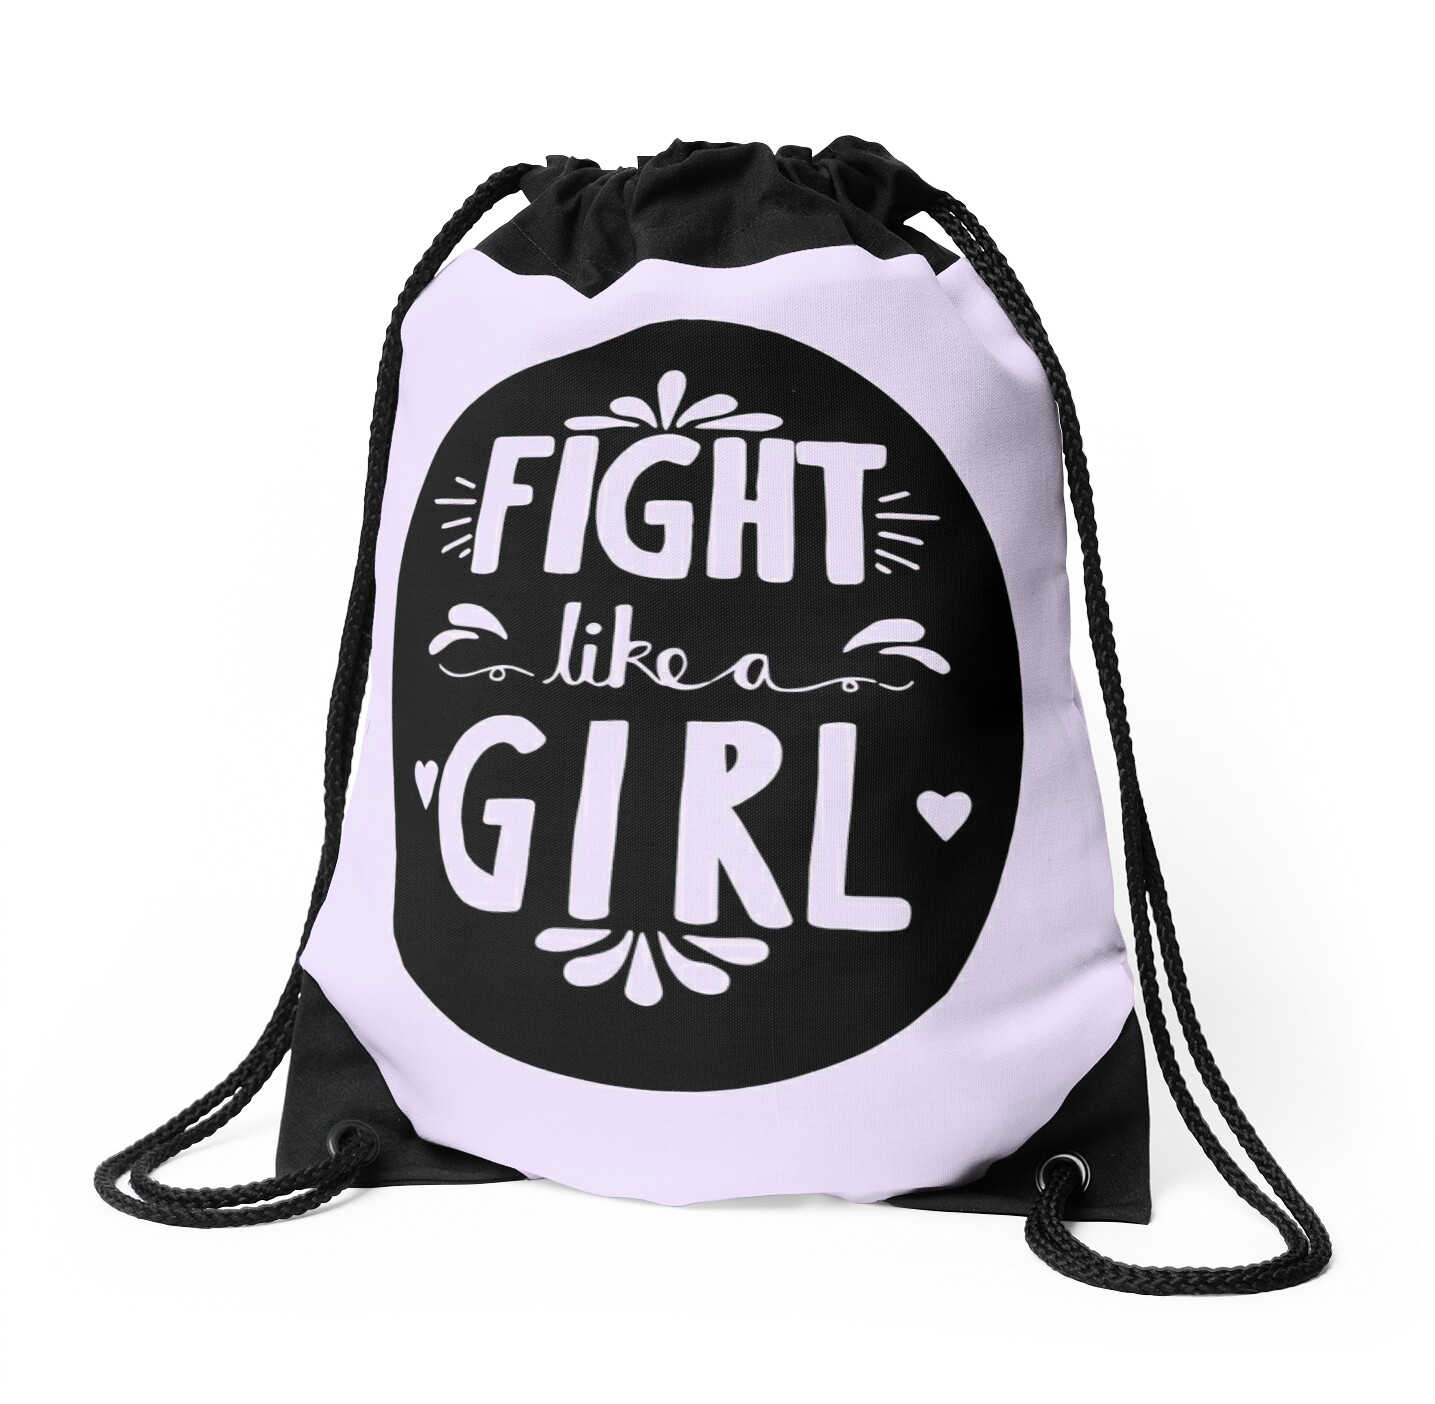 Fight Like A Girl! Oval Design